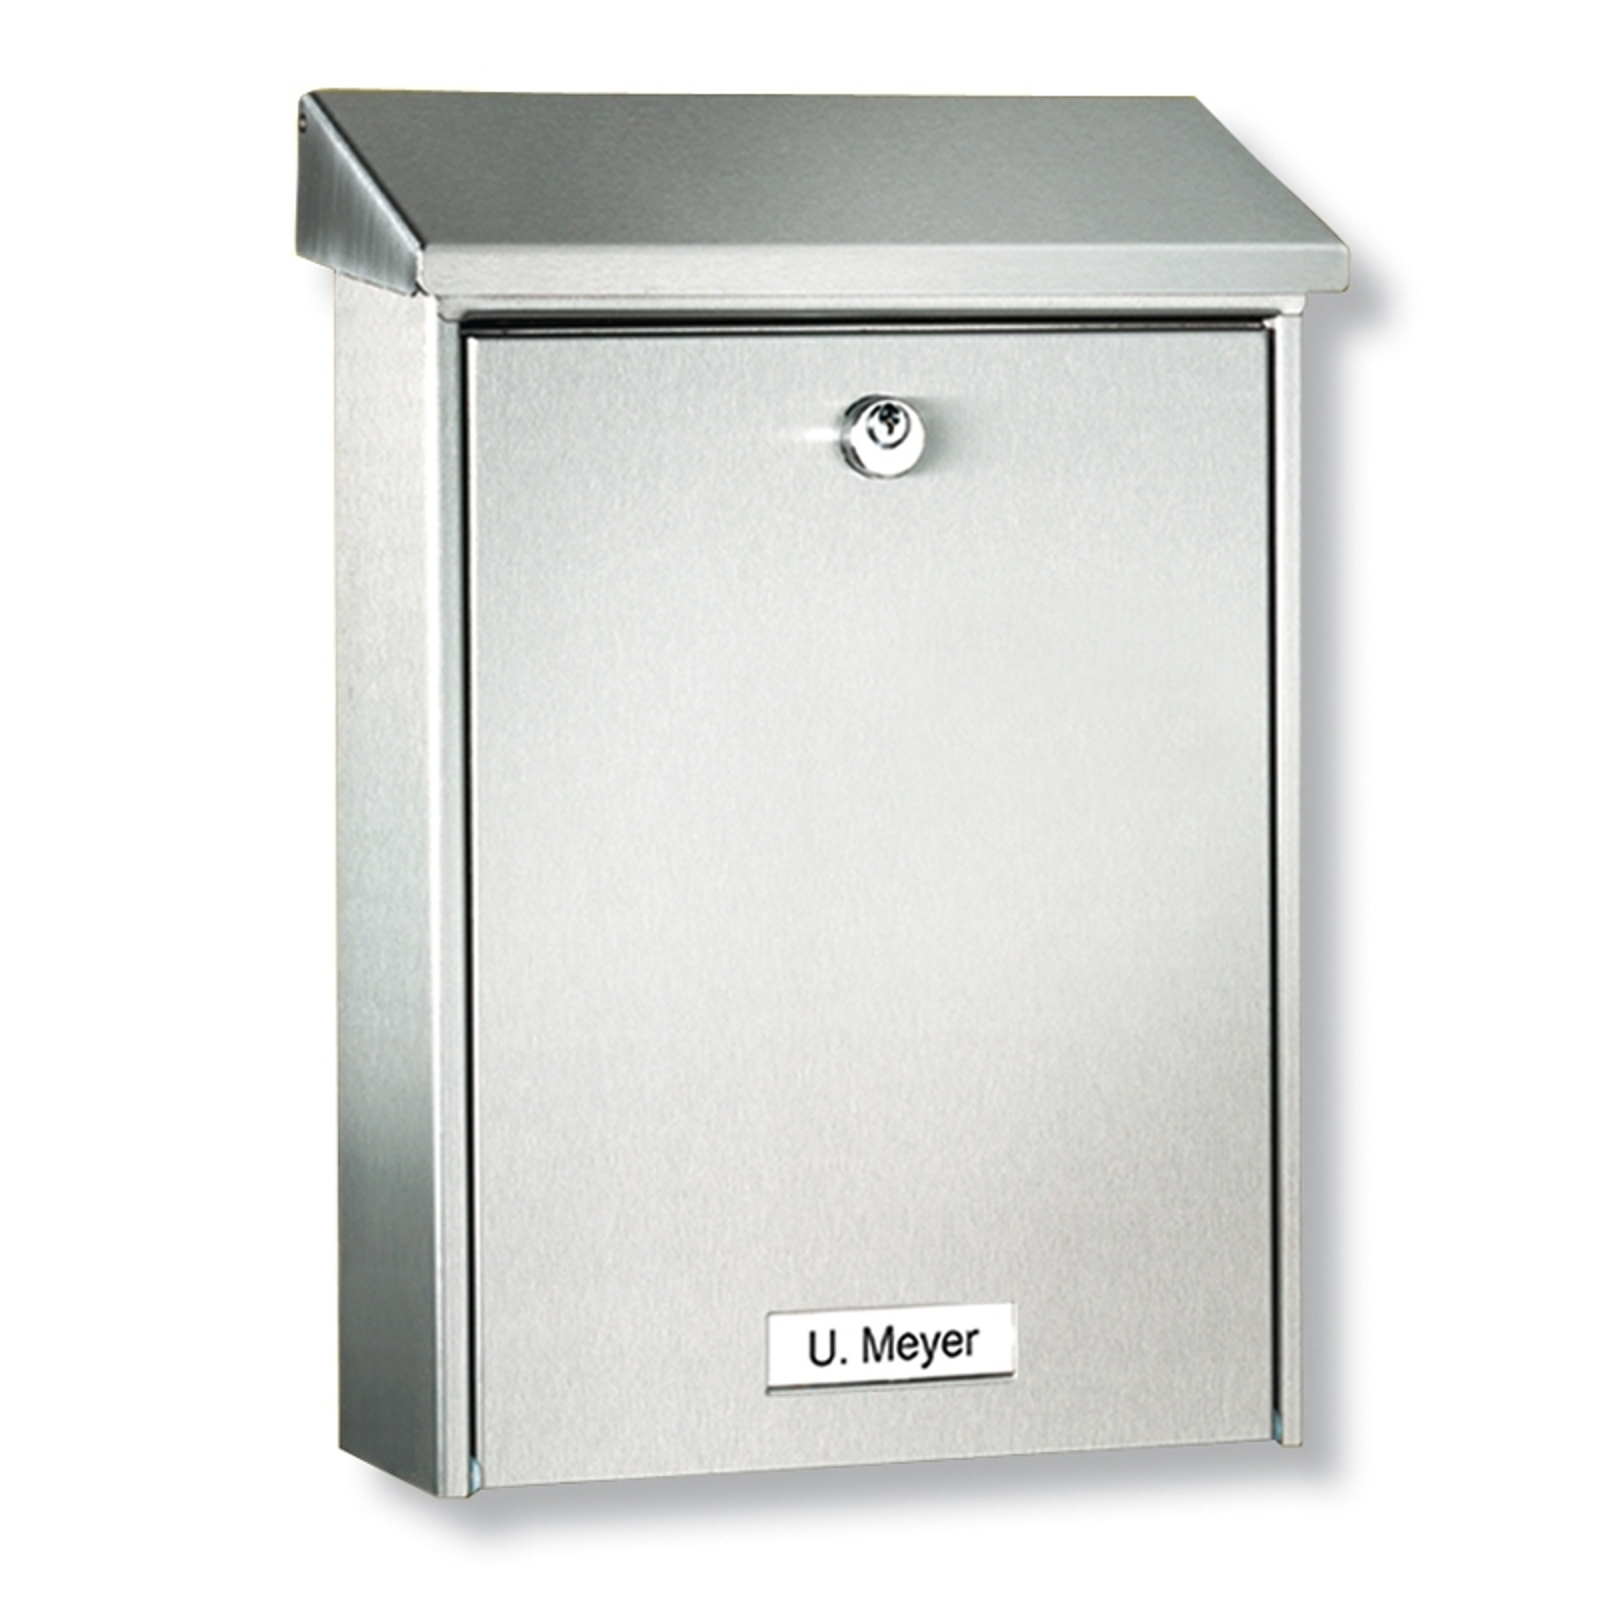 HANNOVER letter box with protective coating_1532037_1